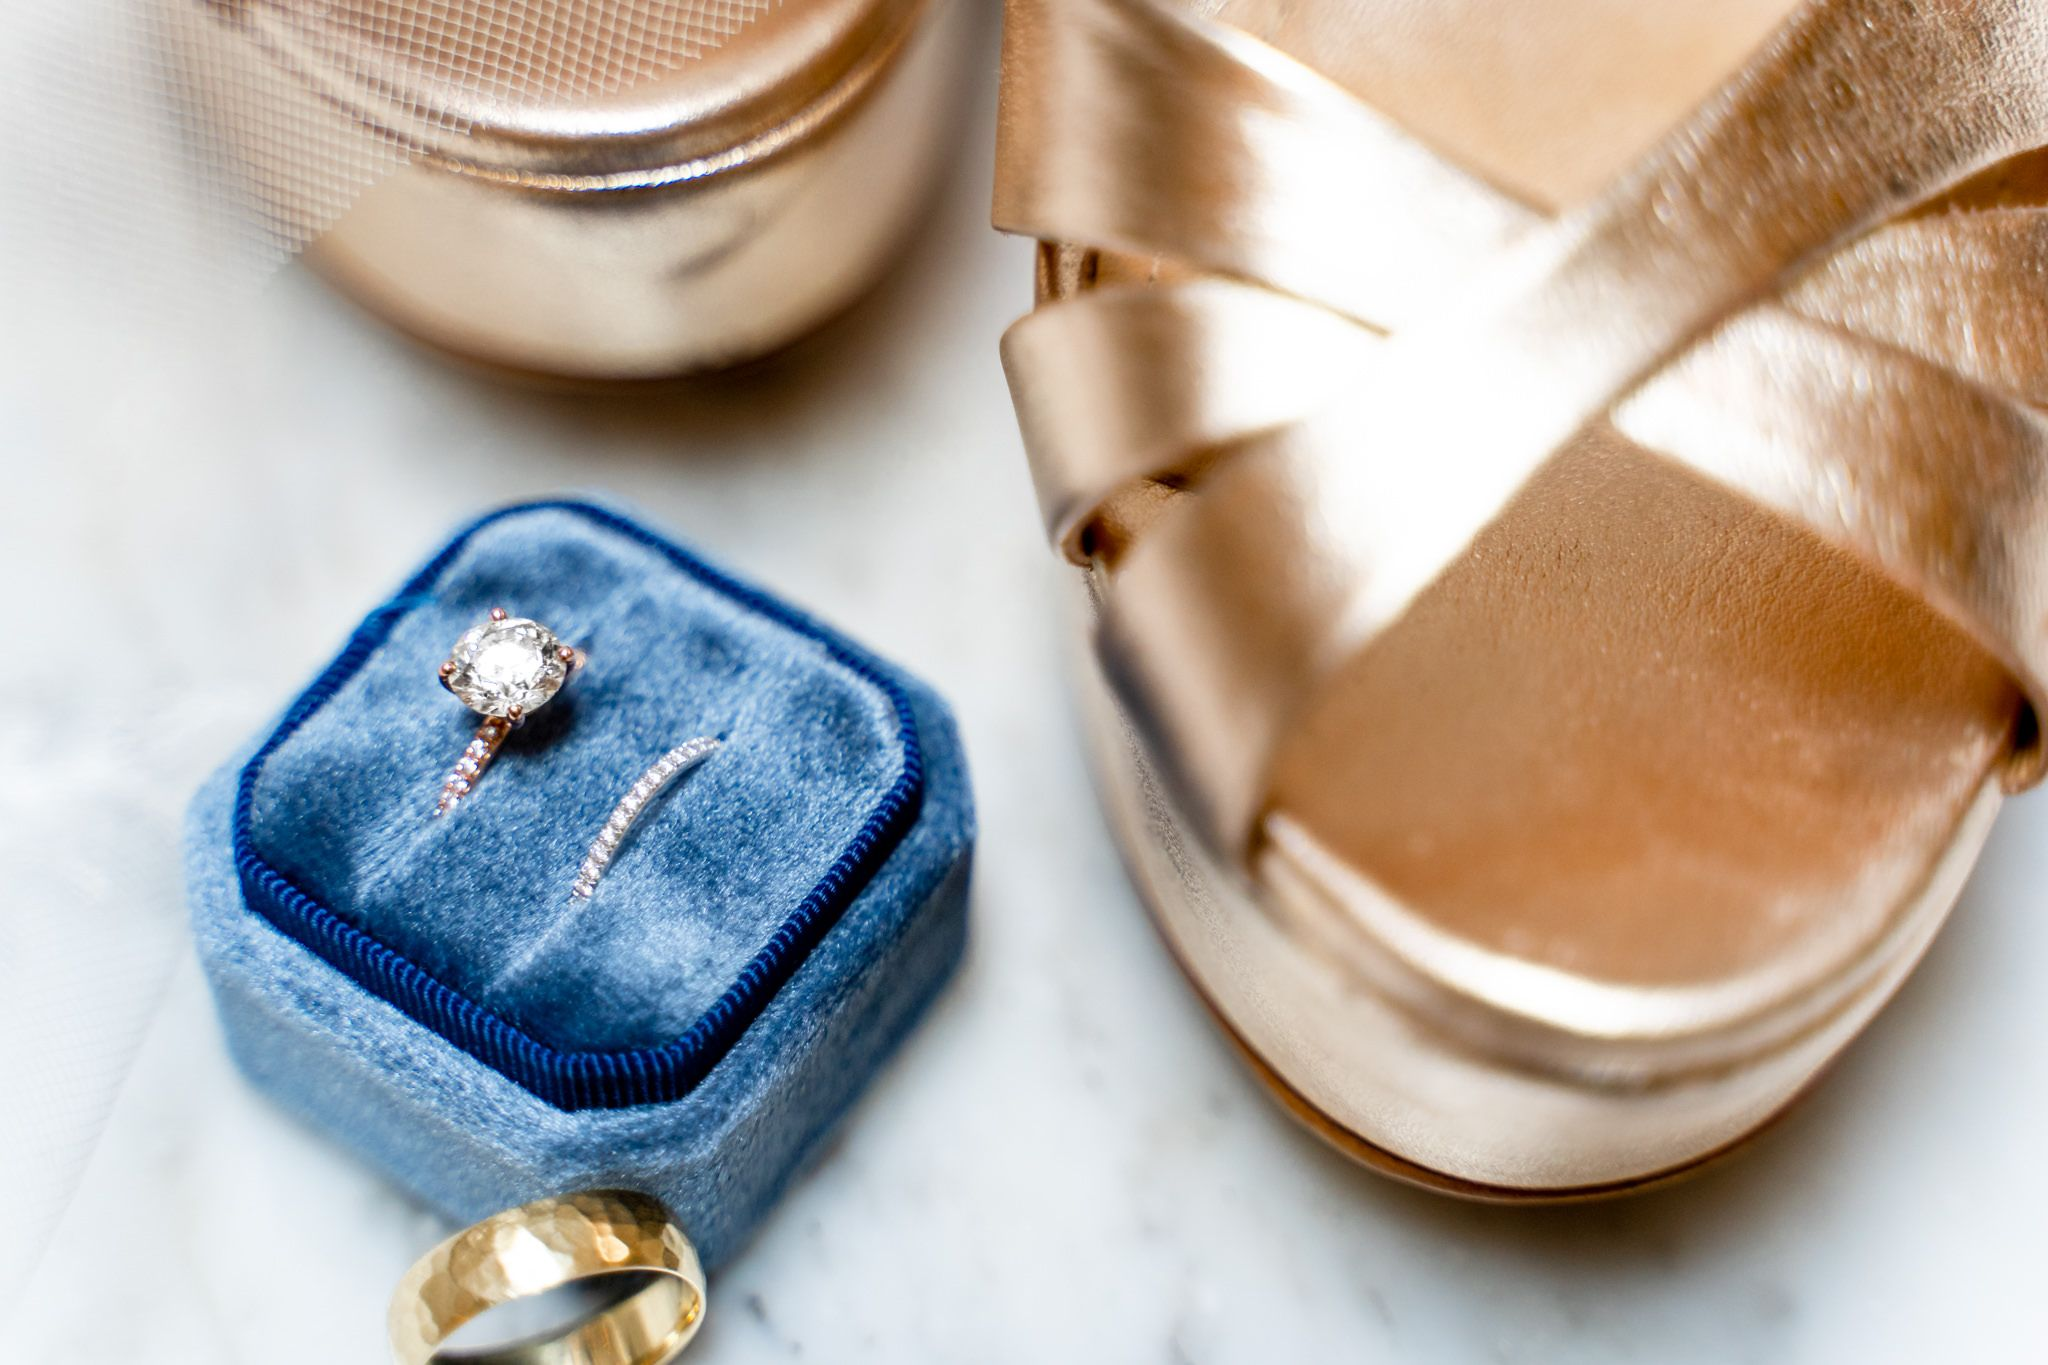 round diamond engagement ring with wedding bands in blue velvet ring box on lace wedding dress and gold wedding shoes